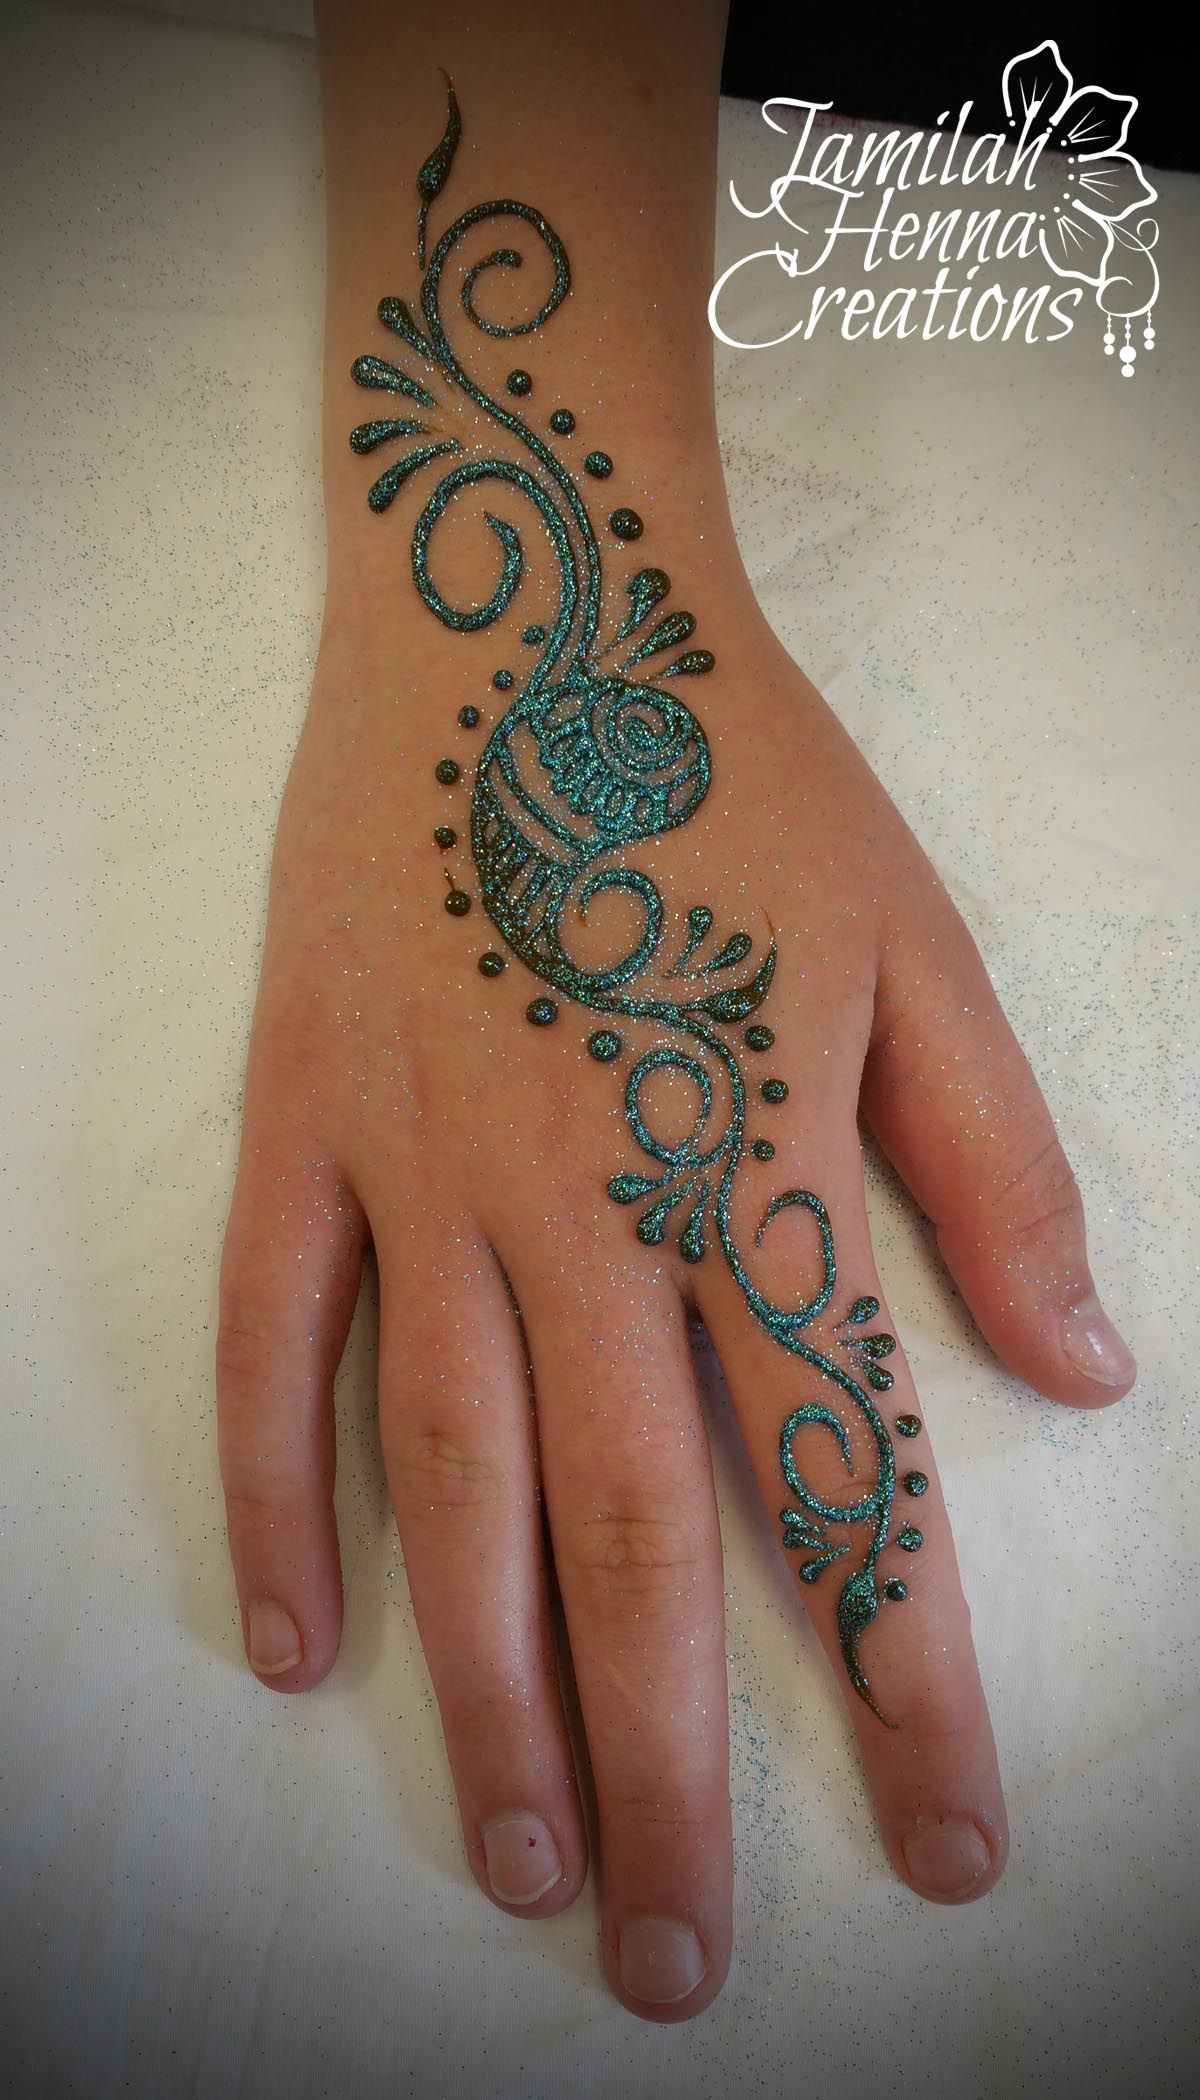 Simple Henna Tattoo Henna Tattoo: Paisley Henna Swirls Www.jamilahhennacreations.com